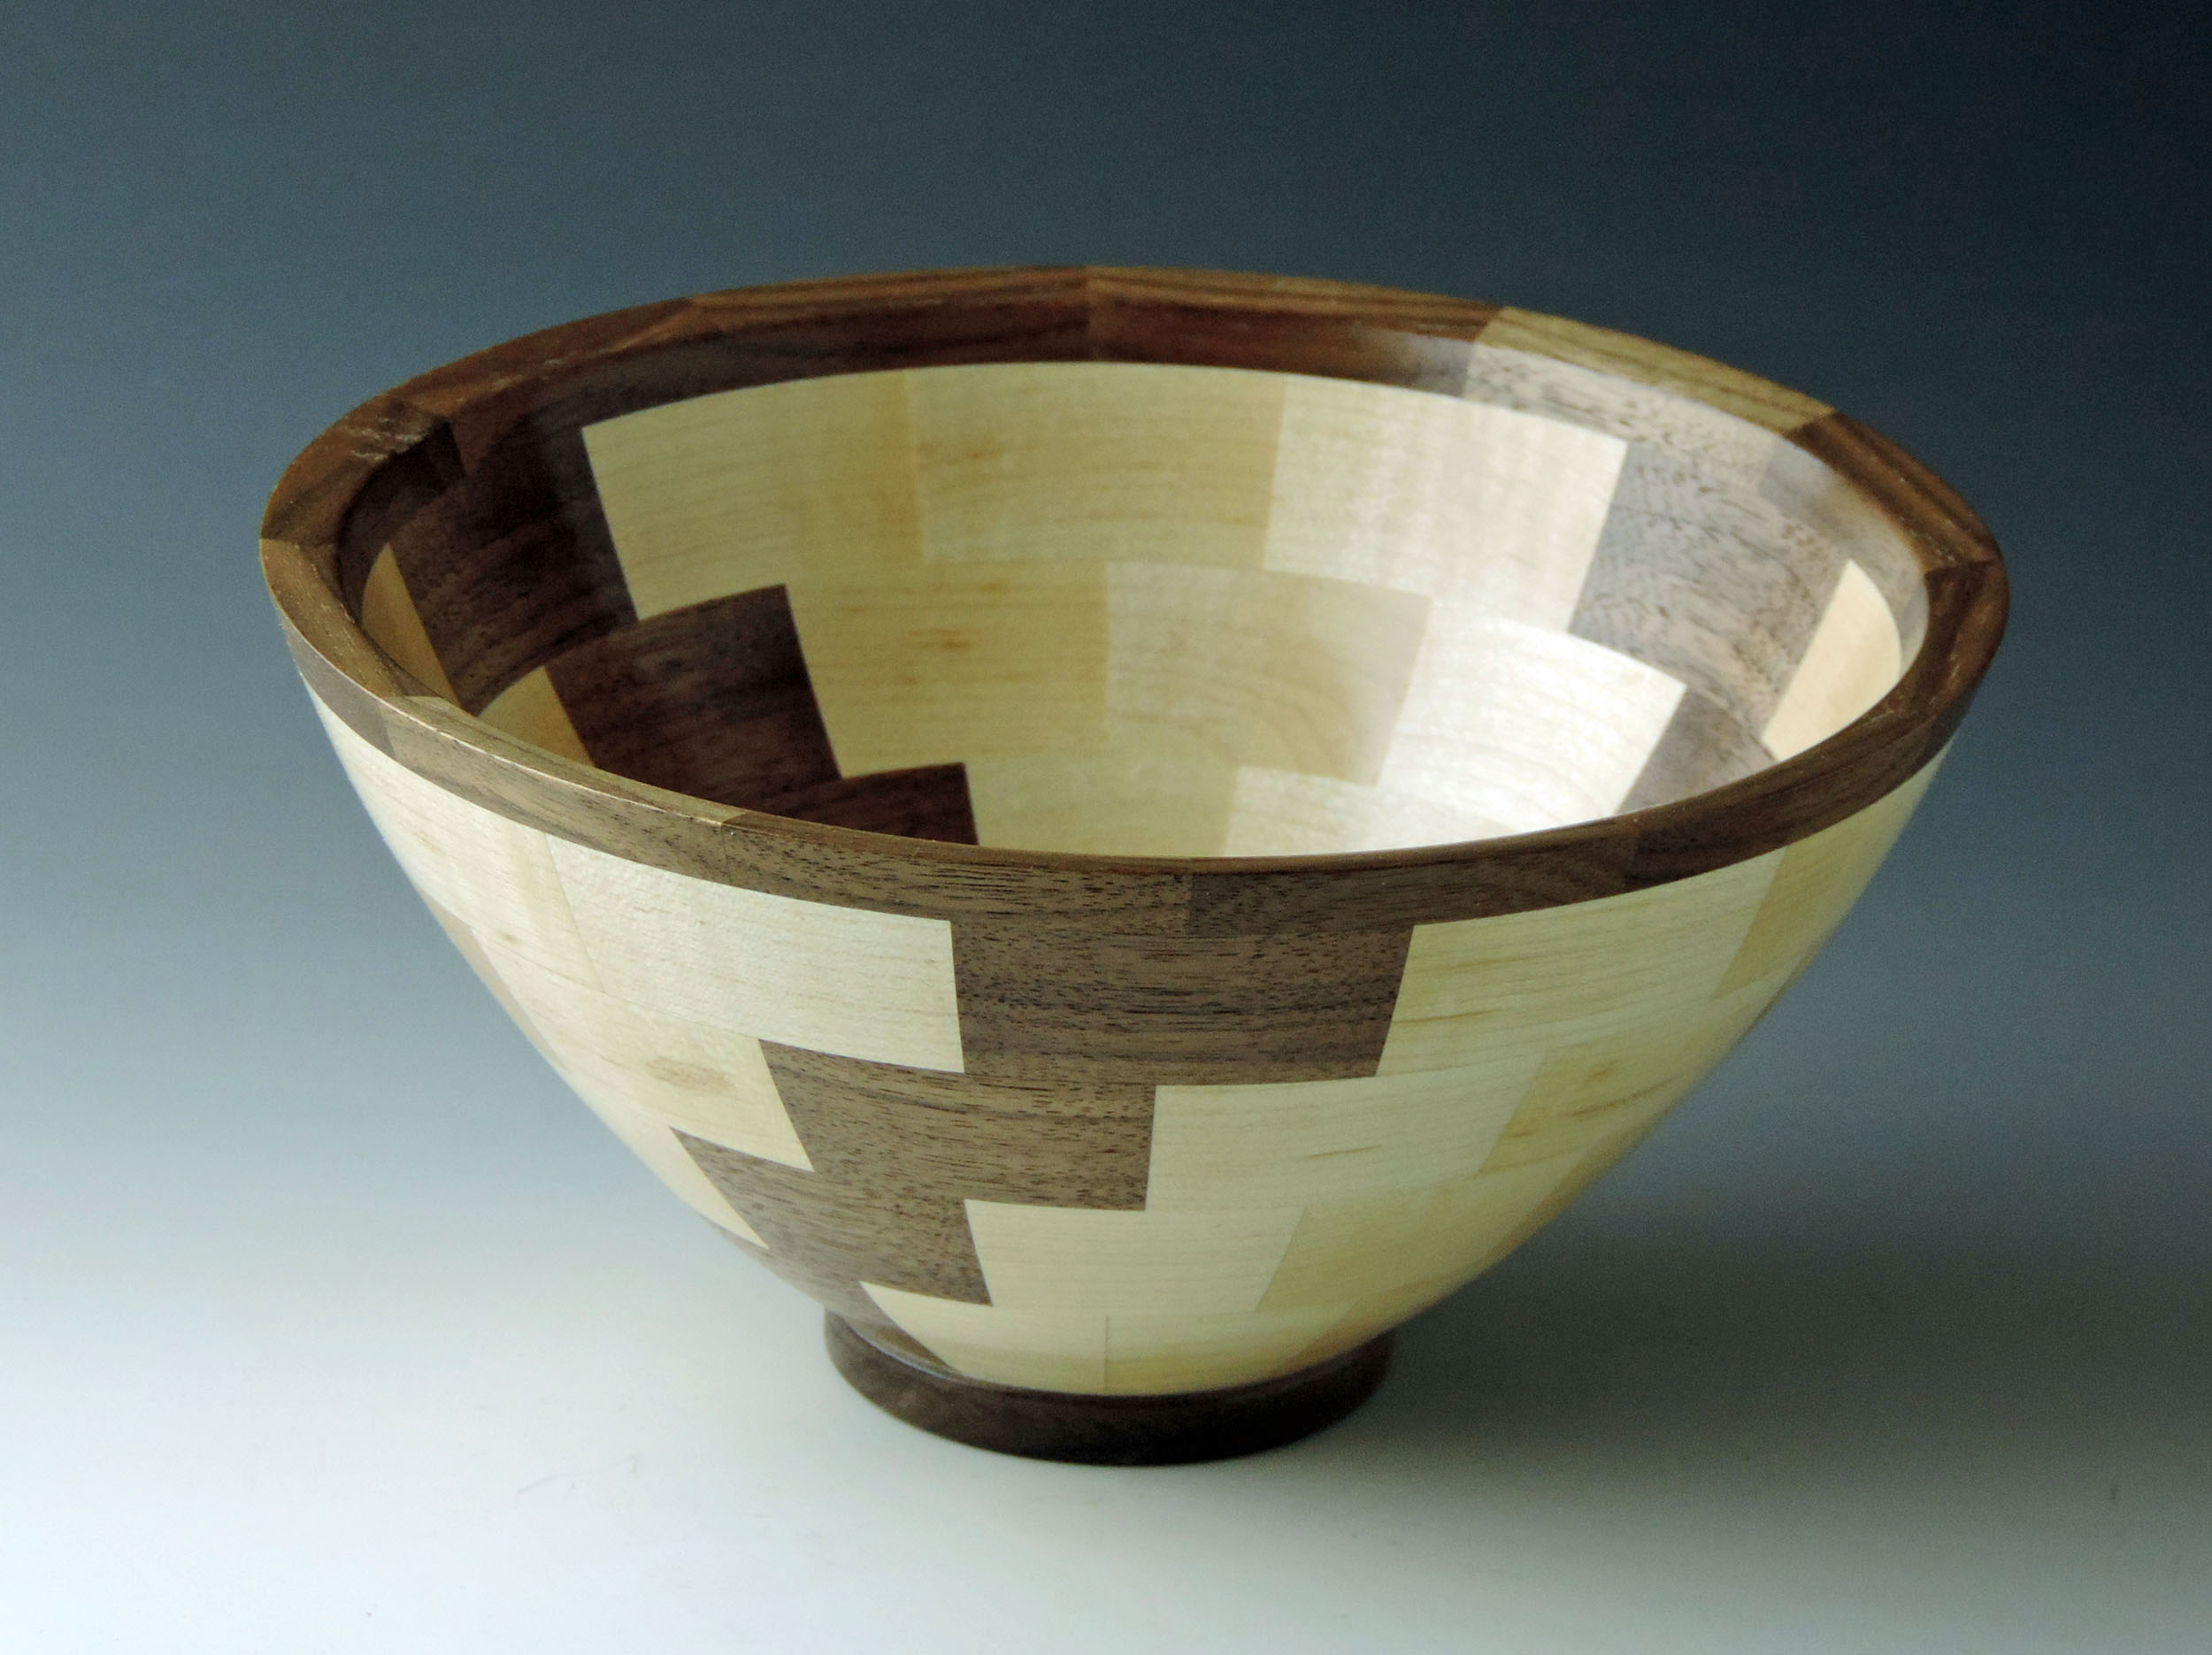 chicago-school-woodworking-seminars-woodturning